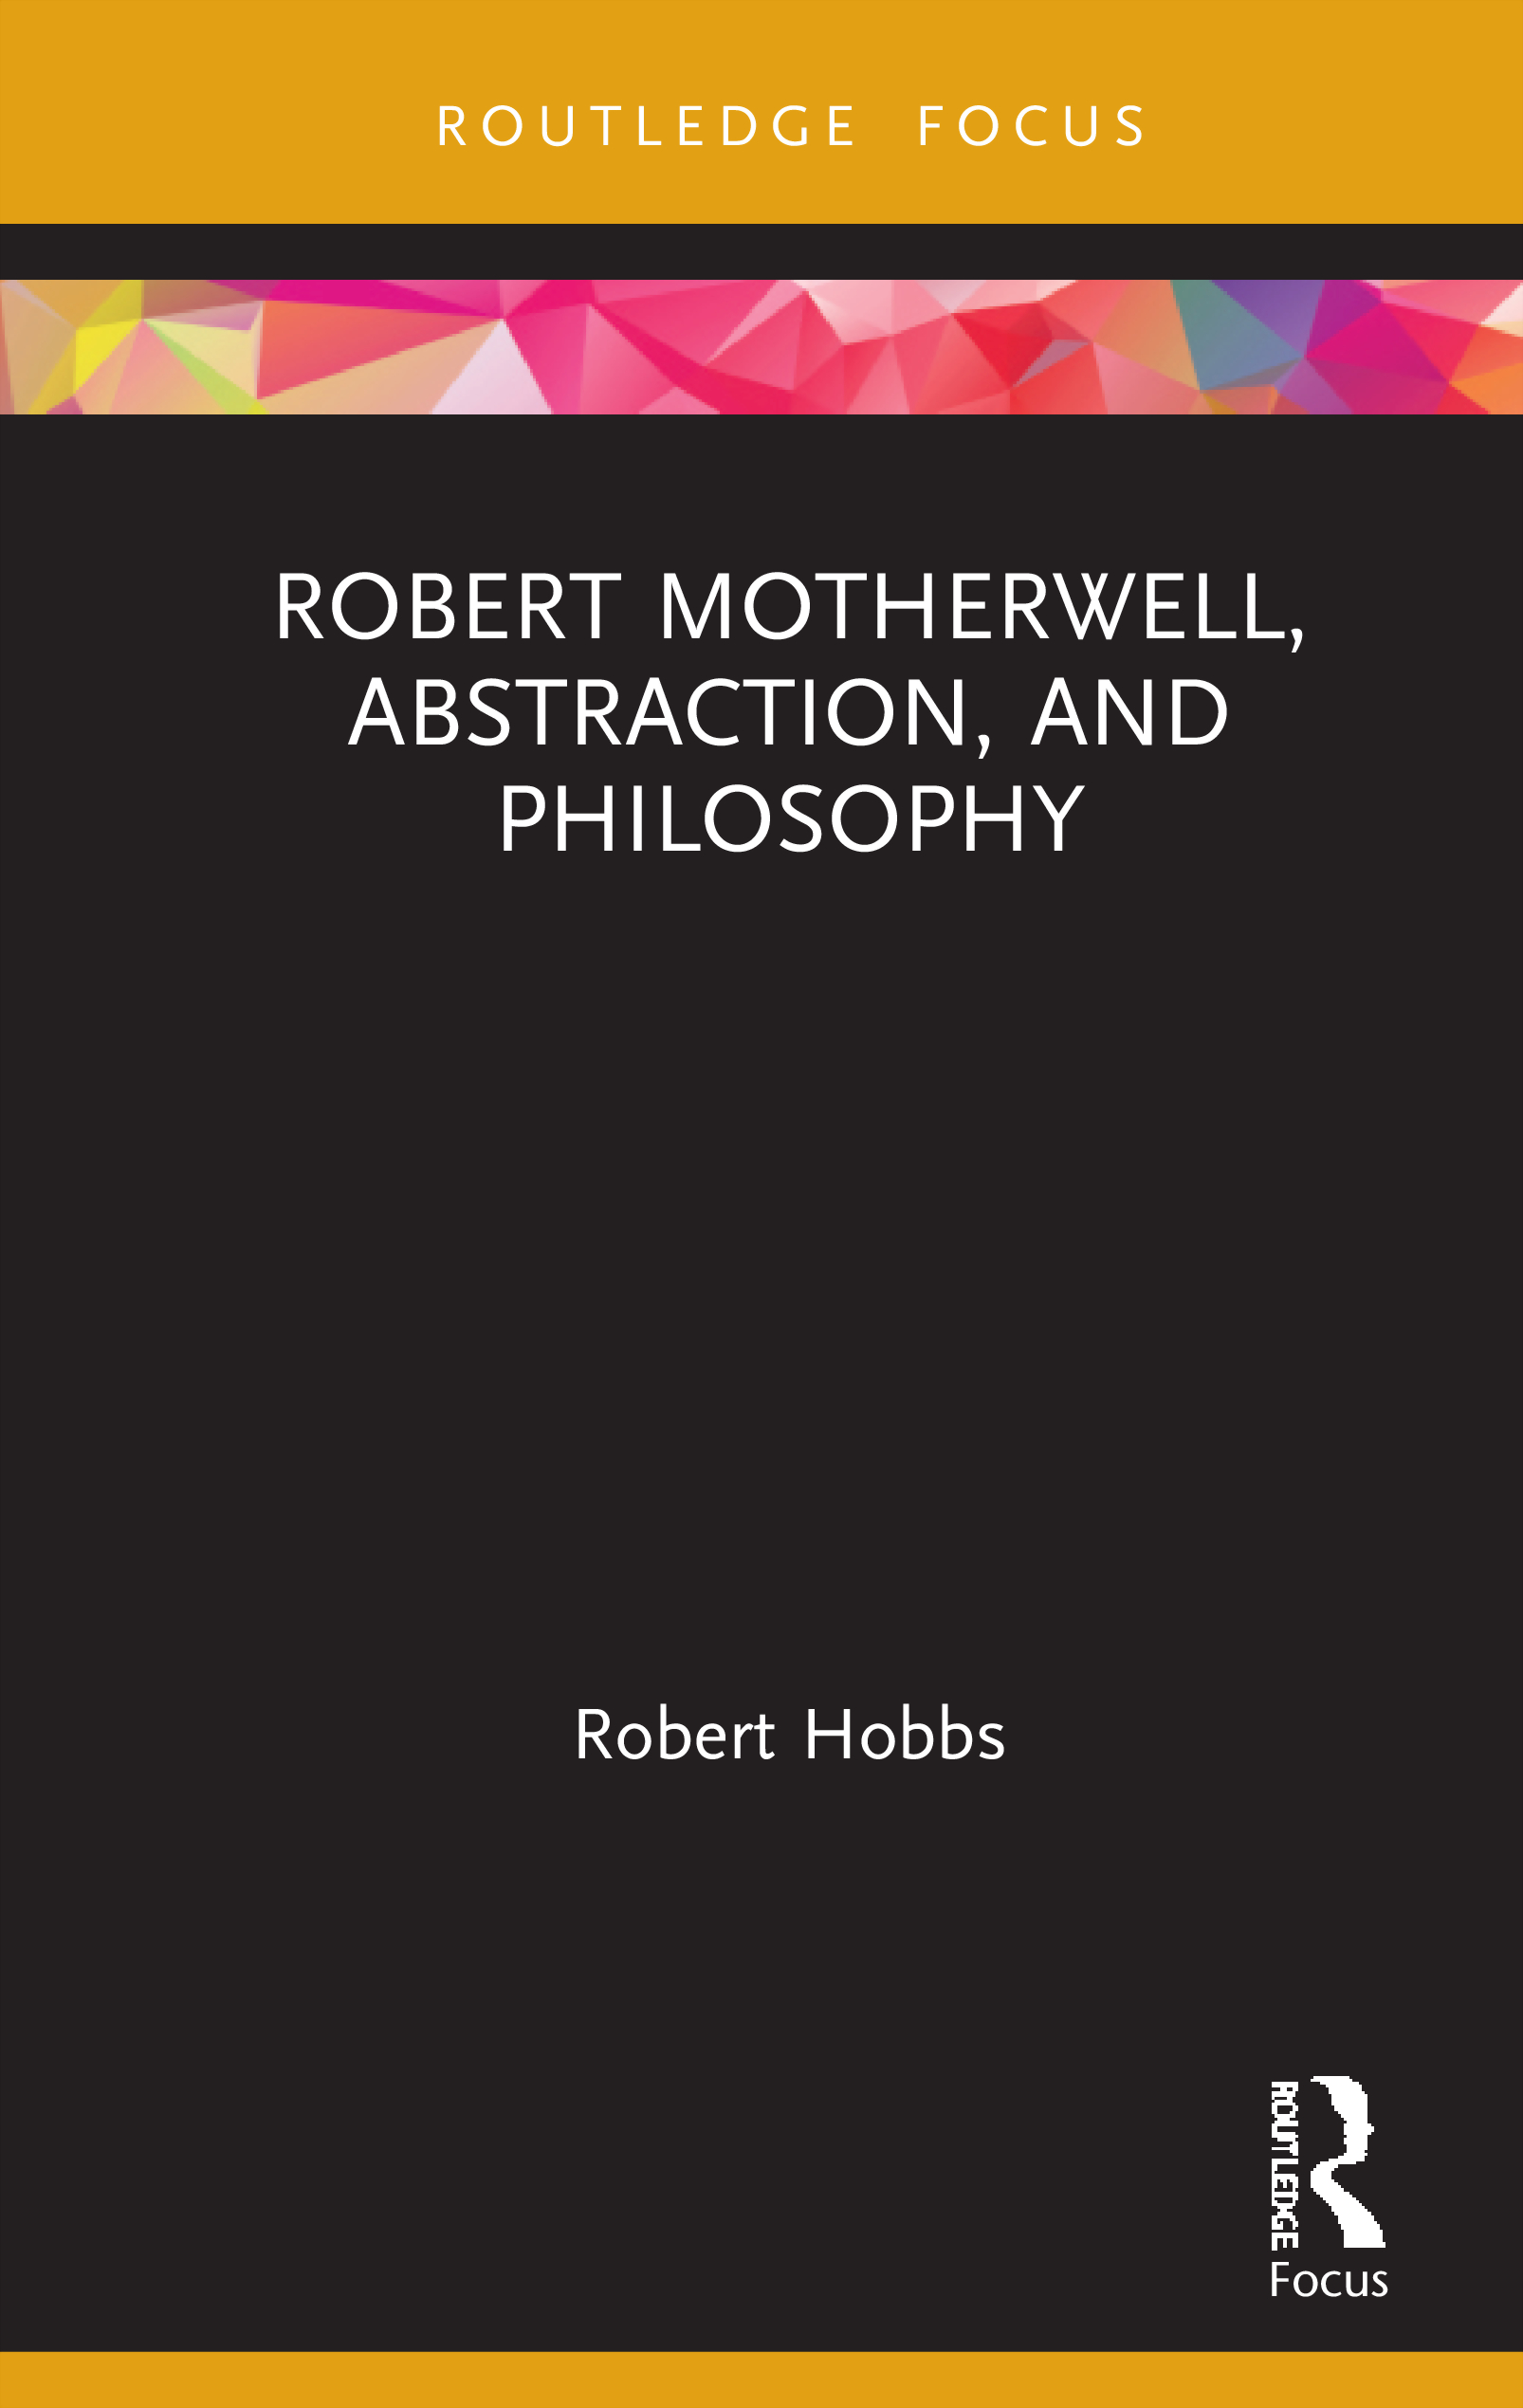 Robert Motherwell, Abstraction, and Philosophy book cover